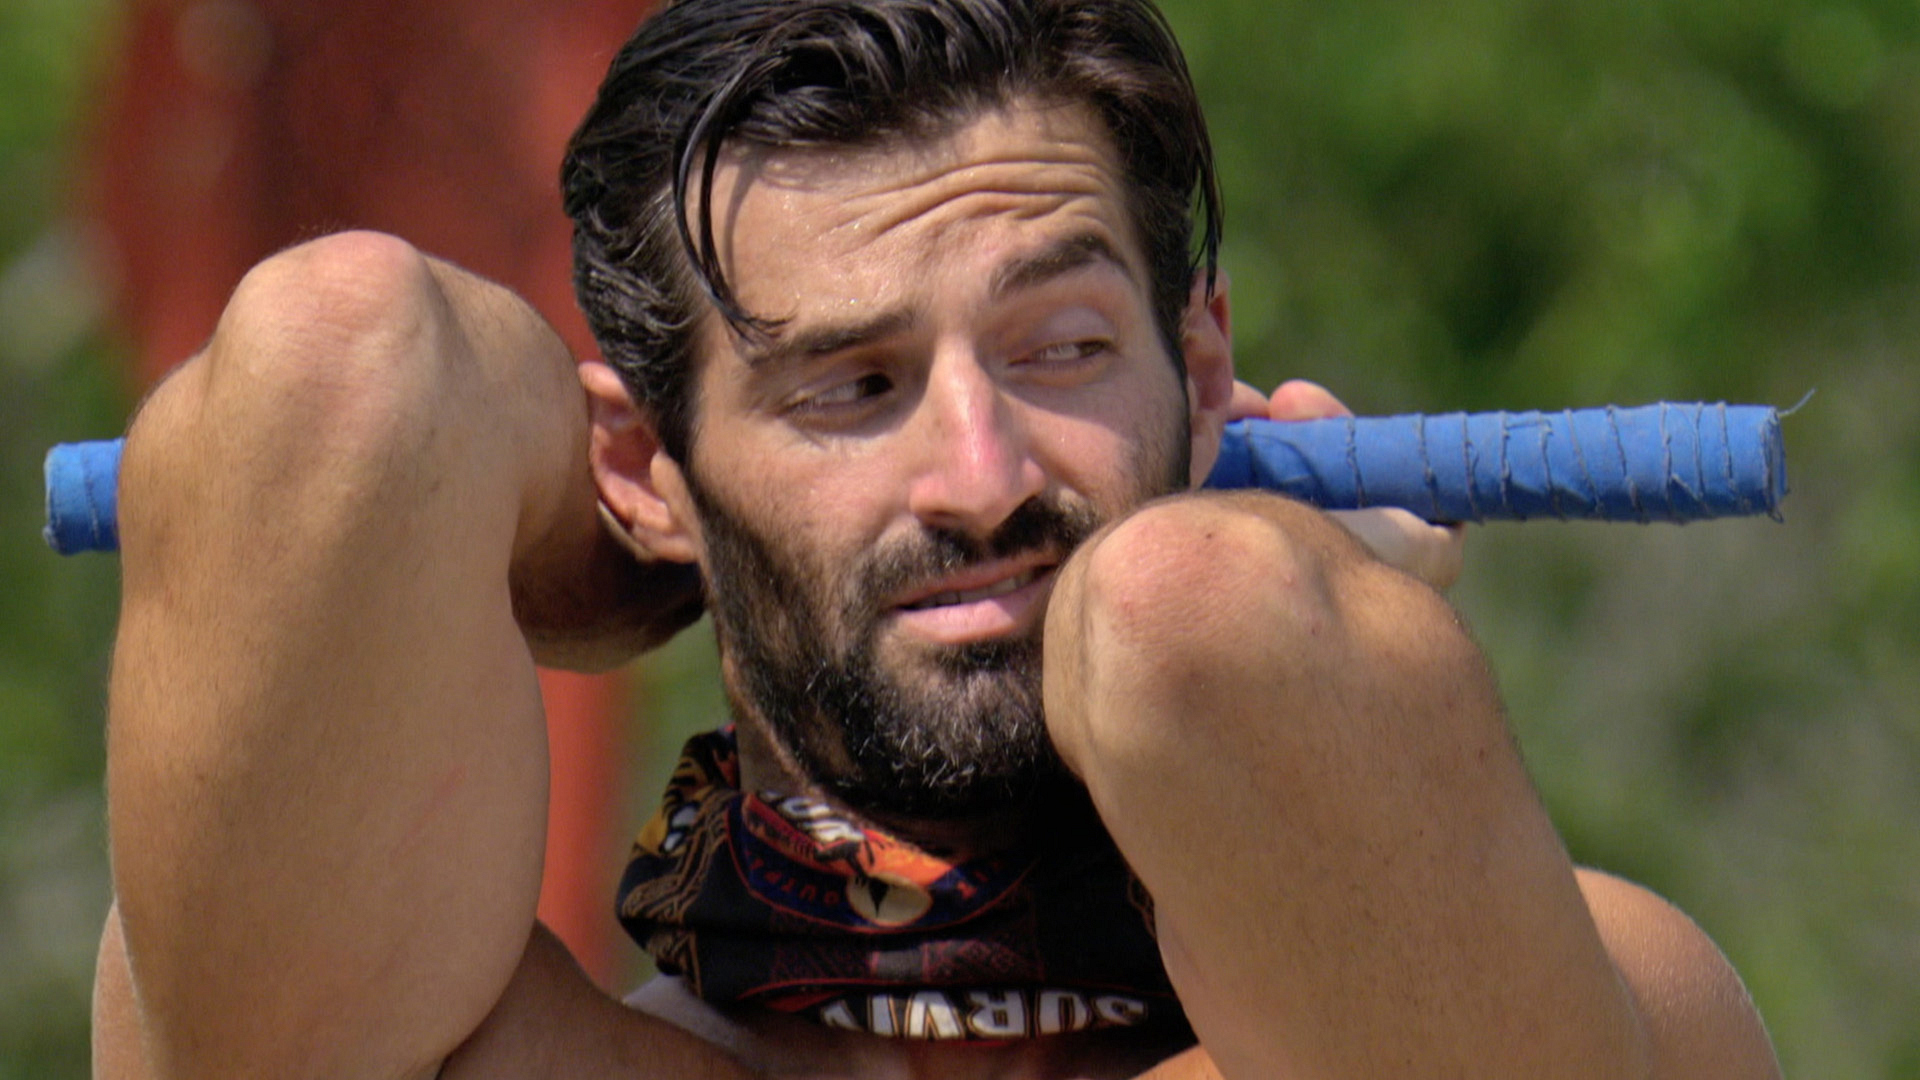 Nick notices the player next to him during the Individual Immunity Challenge.